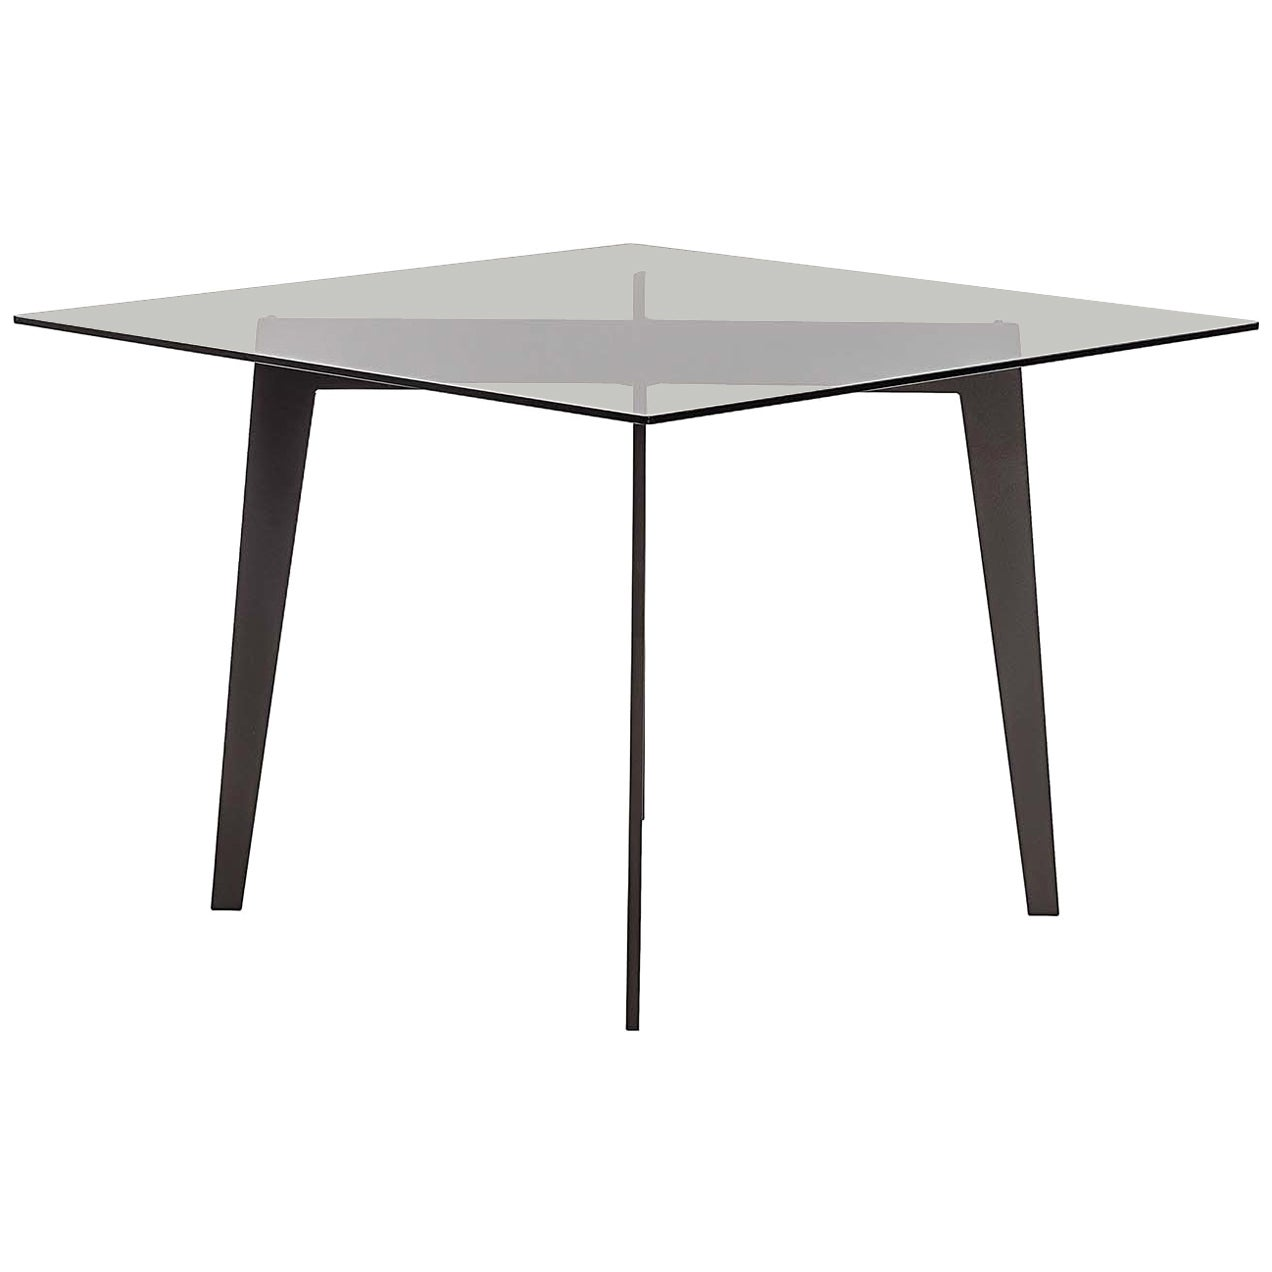 Mood Outdoor Square Table by Braid Outdoor